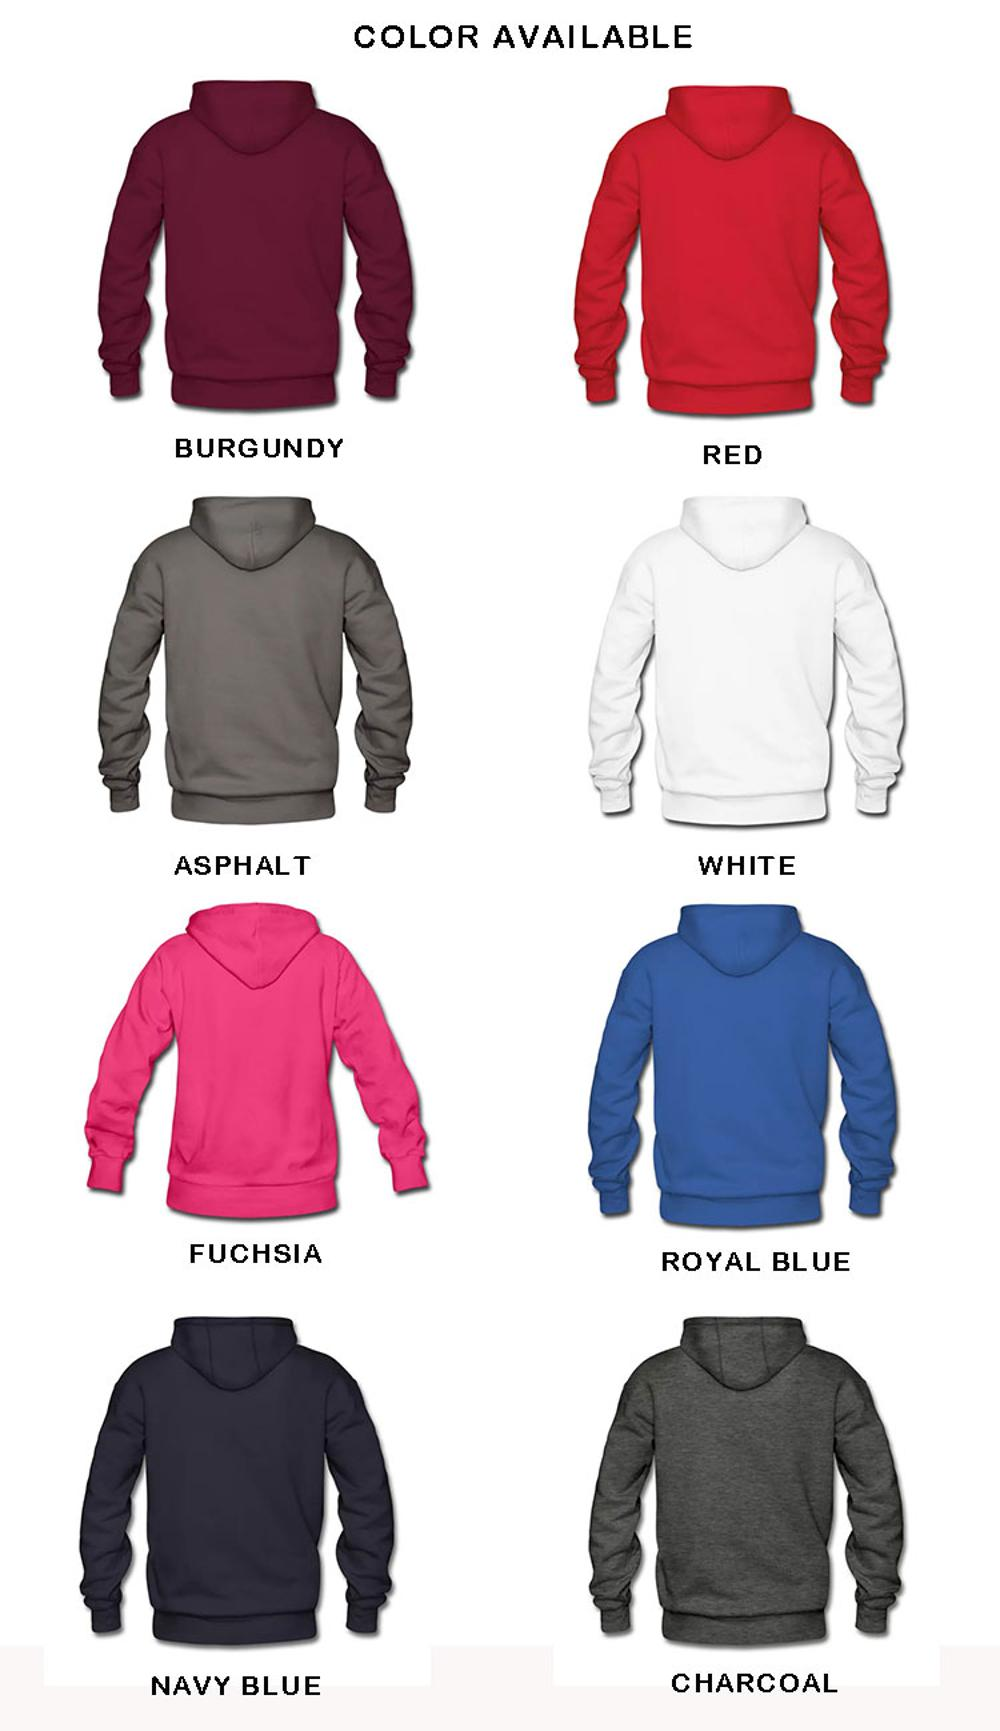 831567b567f1 China cotton pullover hoodie wholesale 🇨🇳 - Alibaba